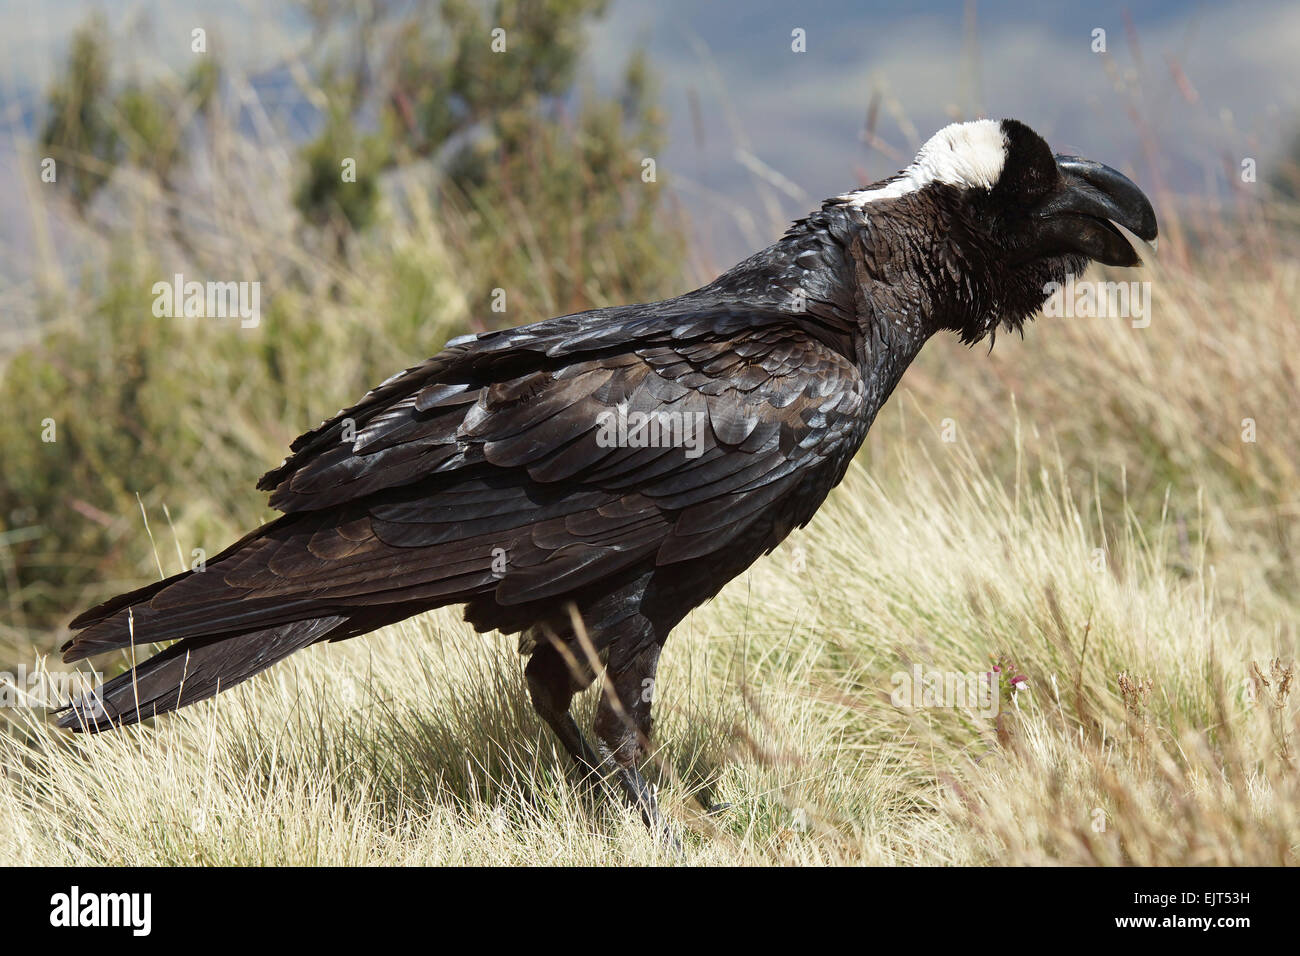 Thick-billed Raven, Ethiopia, Africa - Stock Image